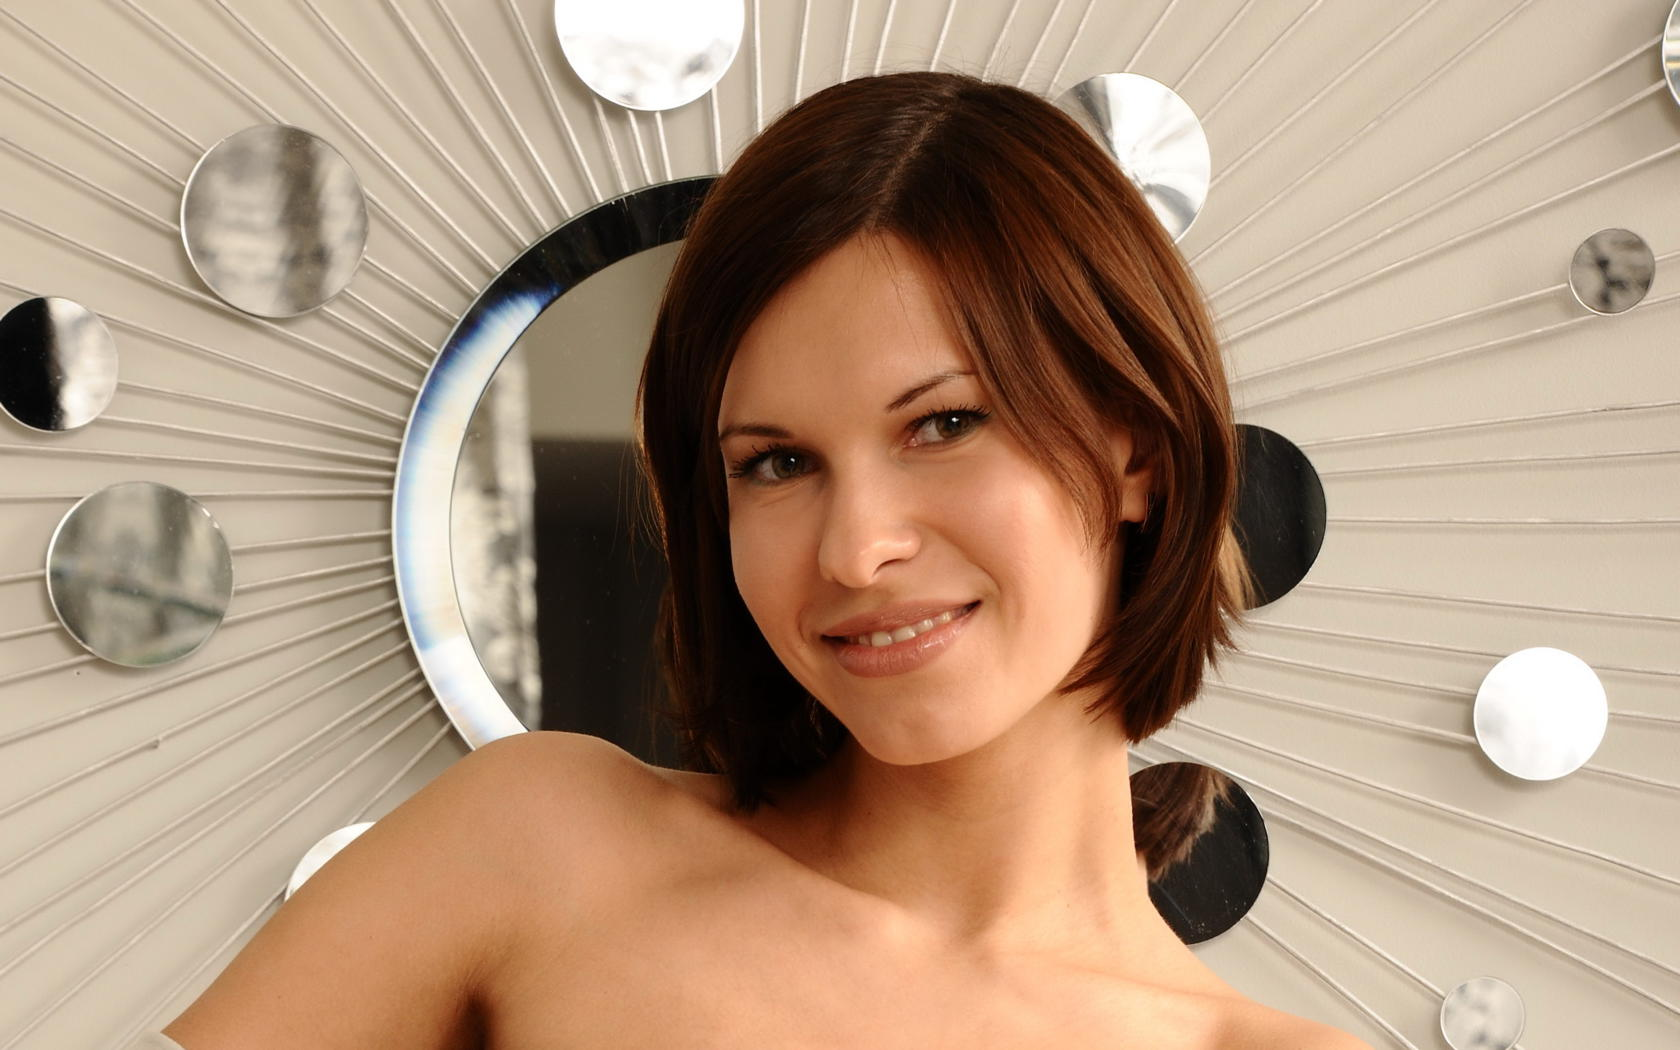 Download photo 1600x900, suzanna a, brunette, smile, face